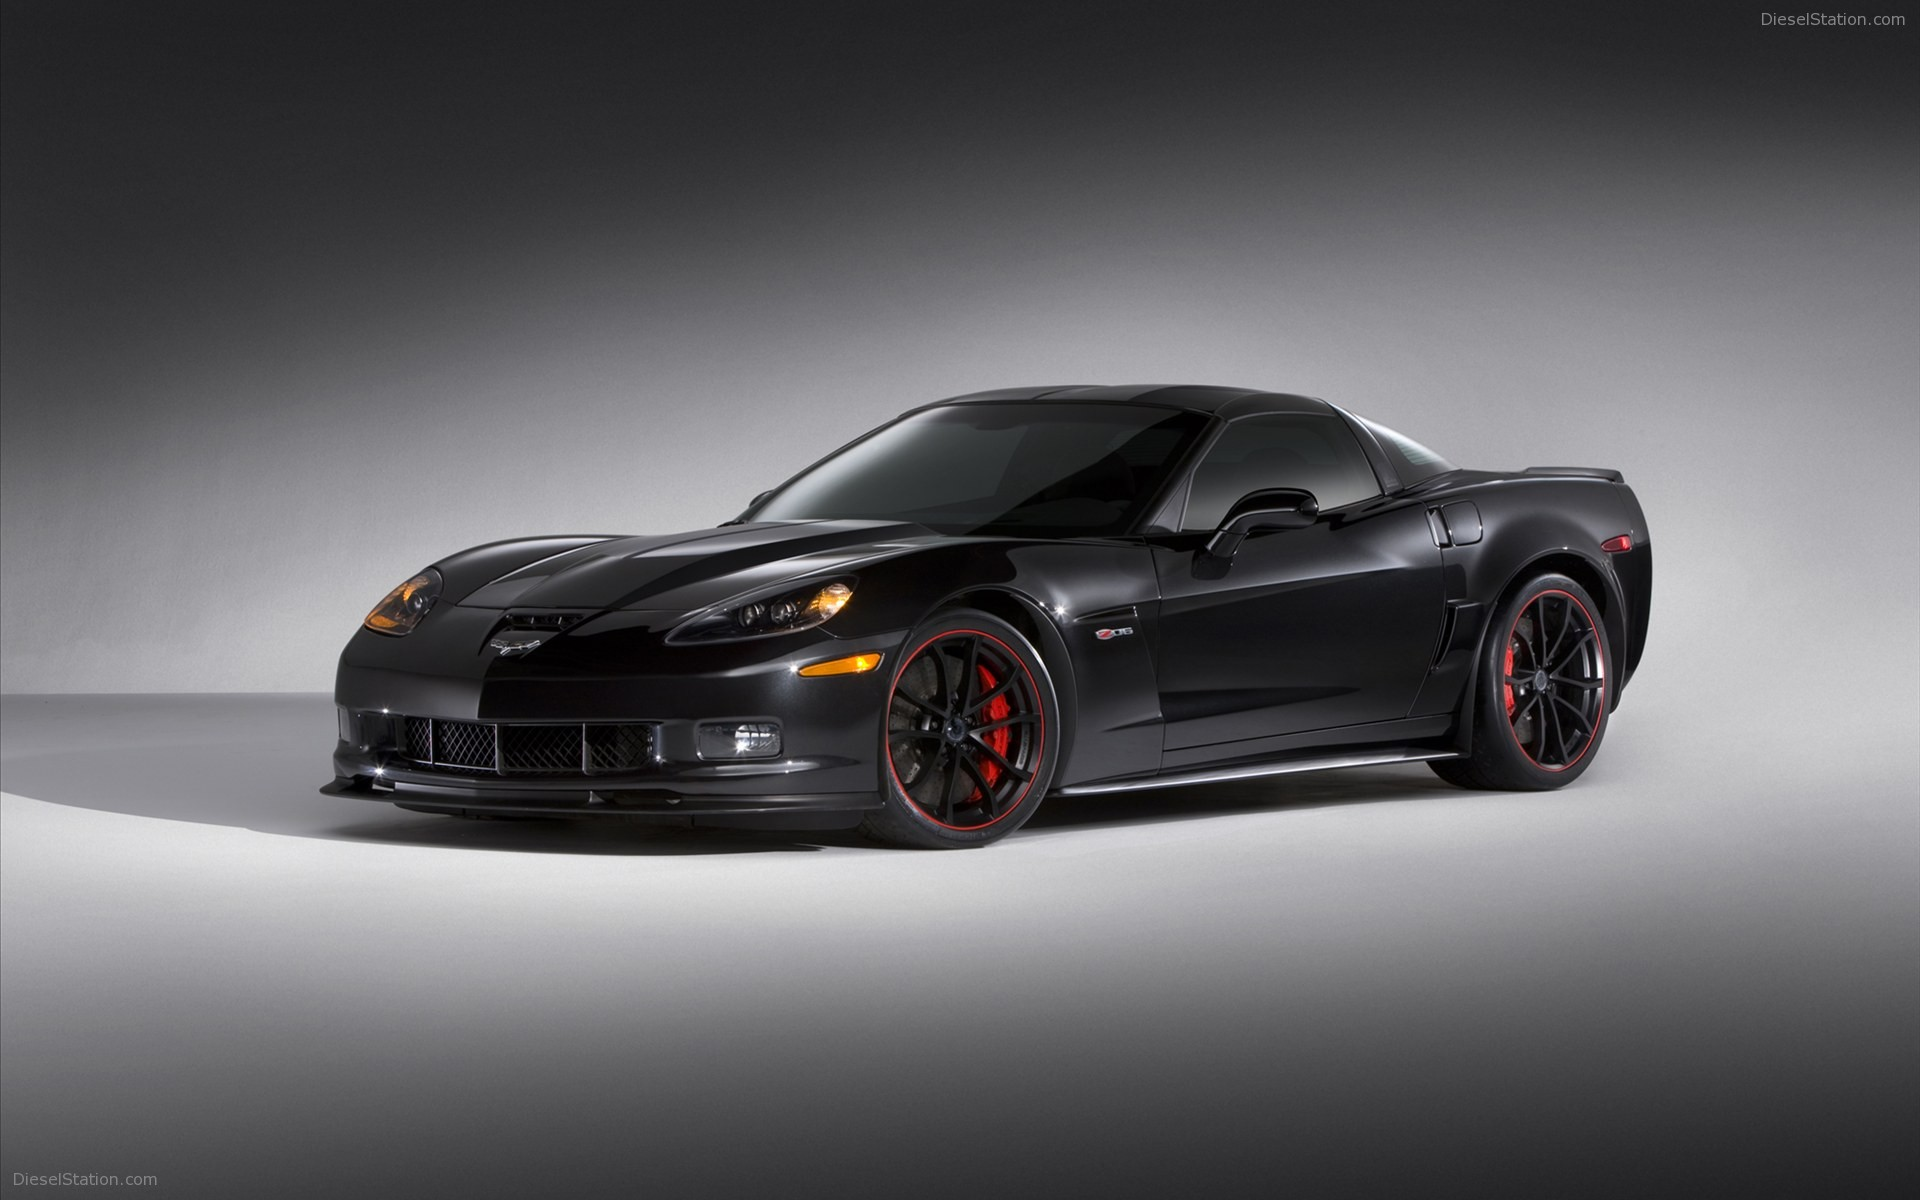 Chevrolet Corvette Coupe 2012